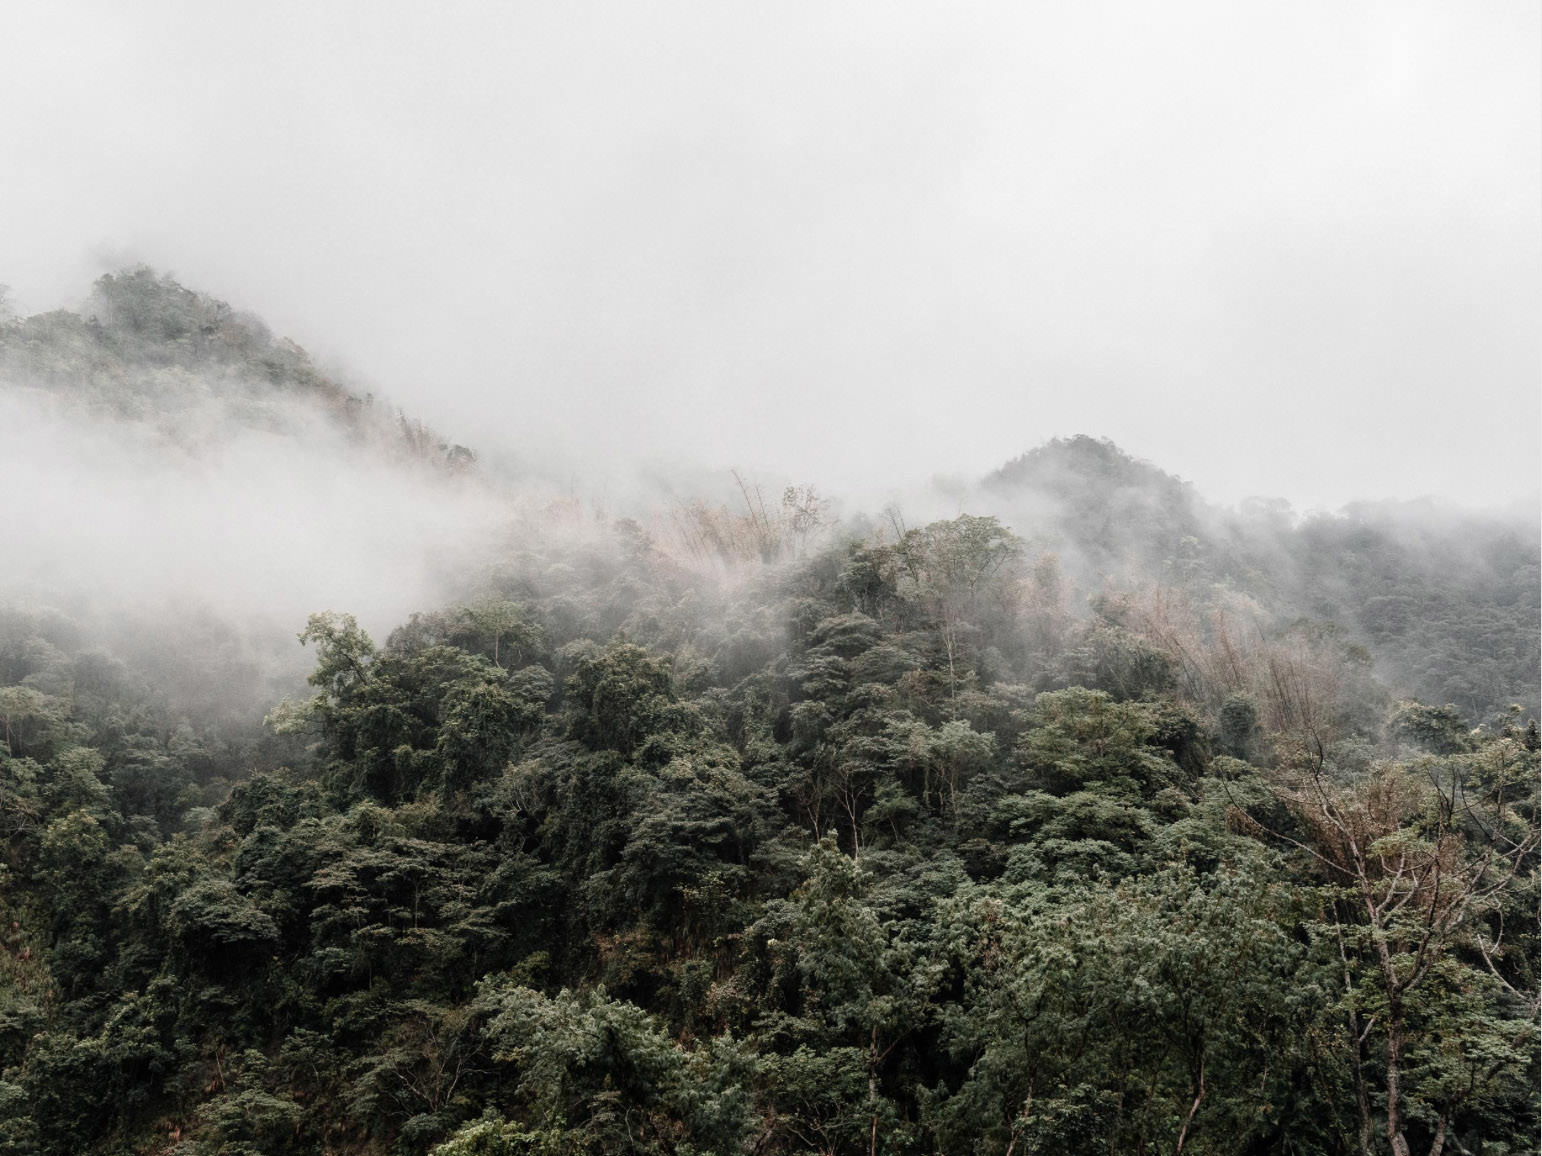 Foggy Mountain photography by Cody Cobb